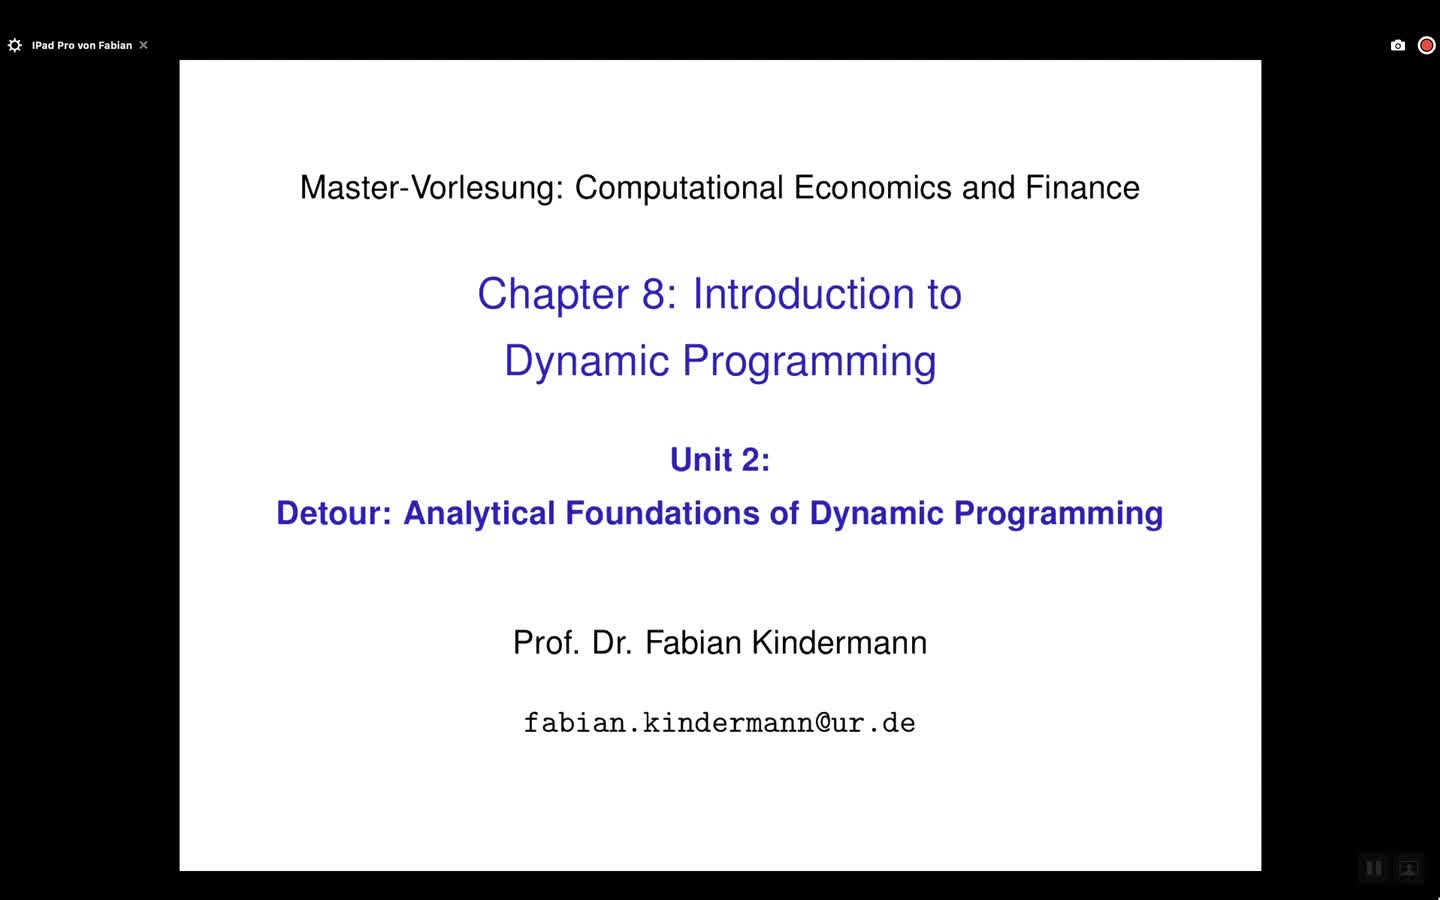 Chapter 8 - Unit 2 - Detour: Analytical Foundations of Dynamic Programming